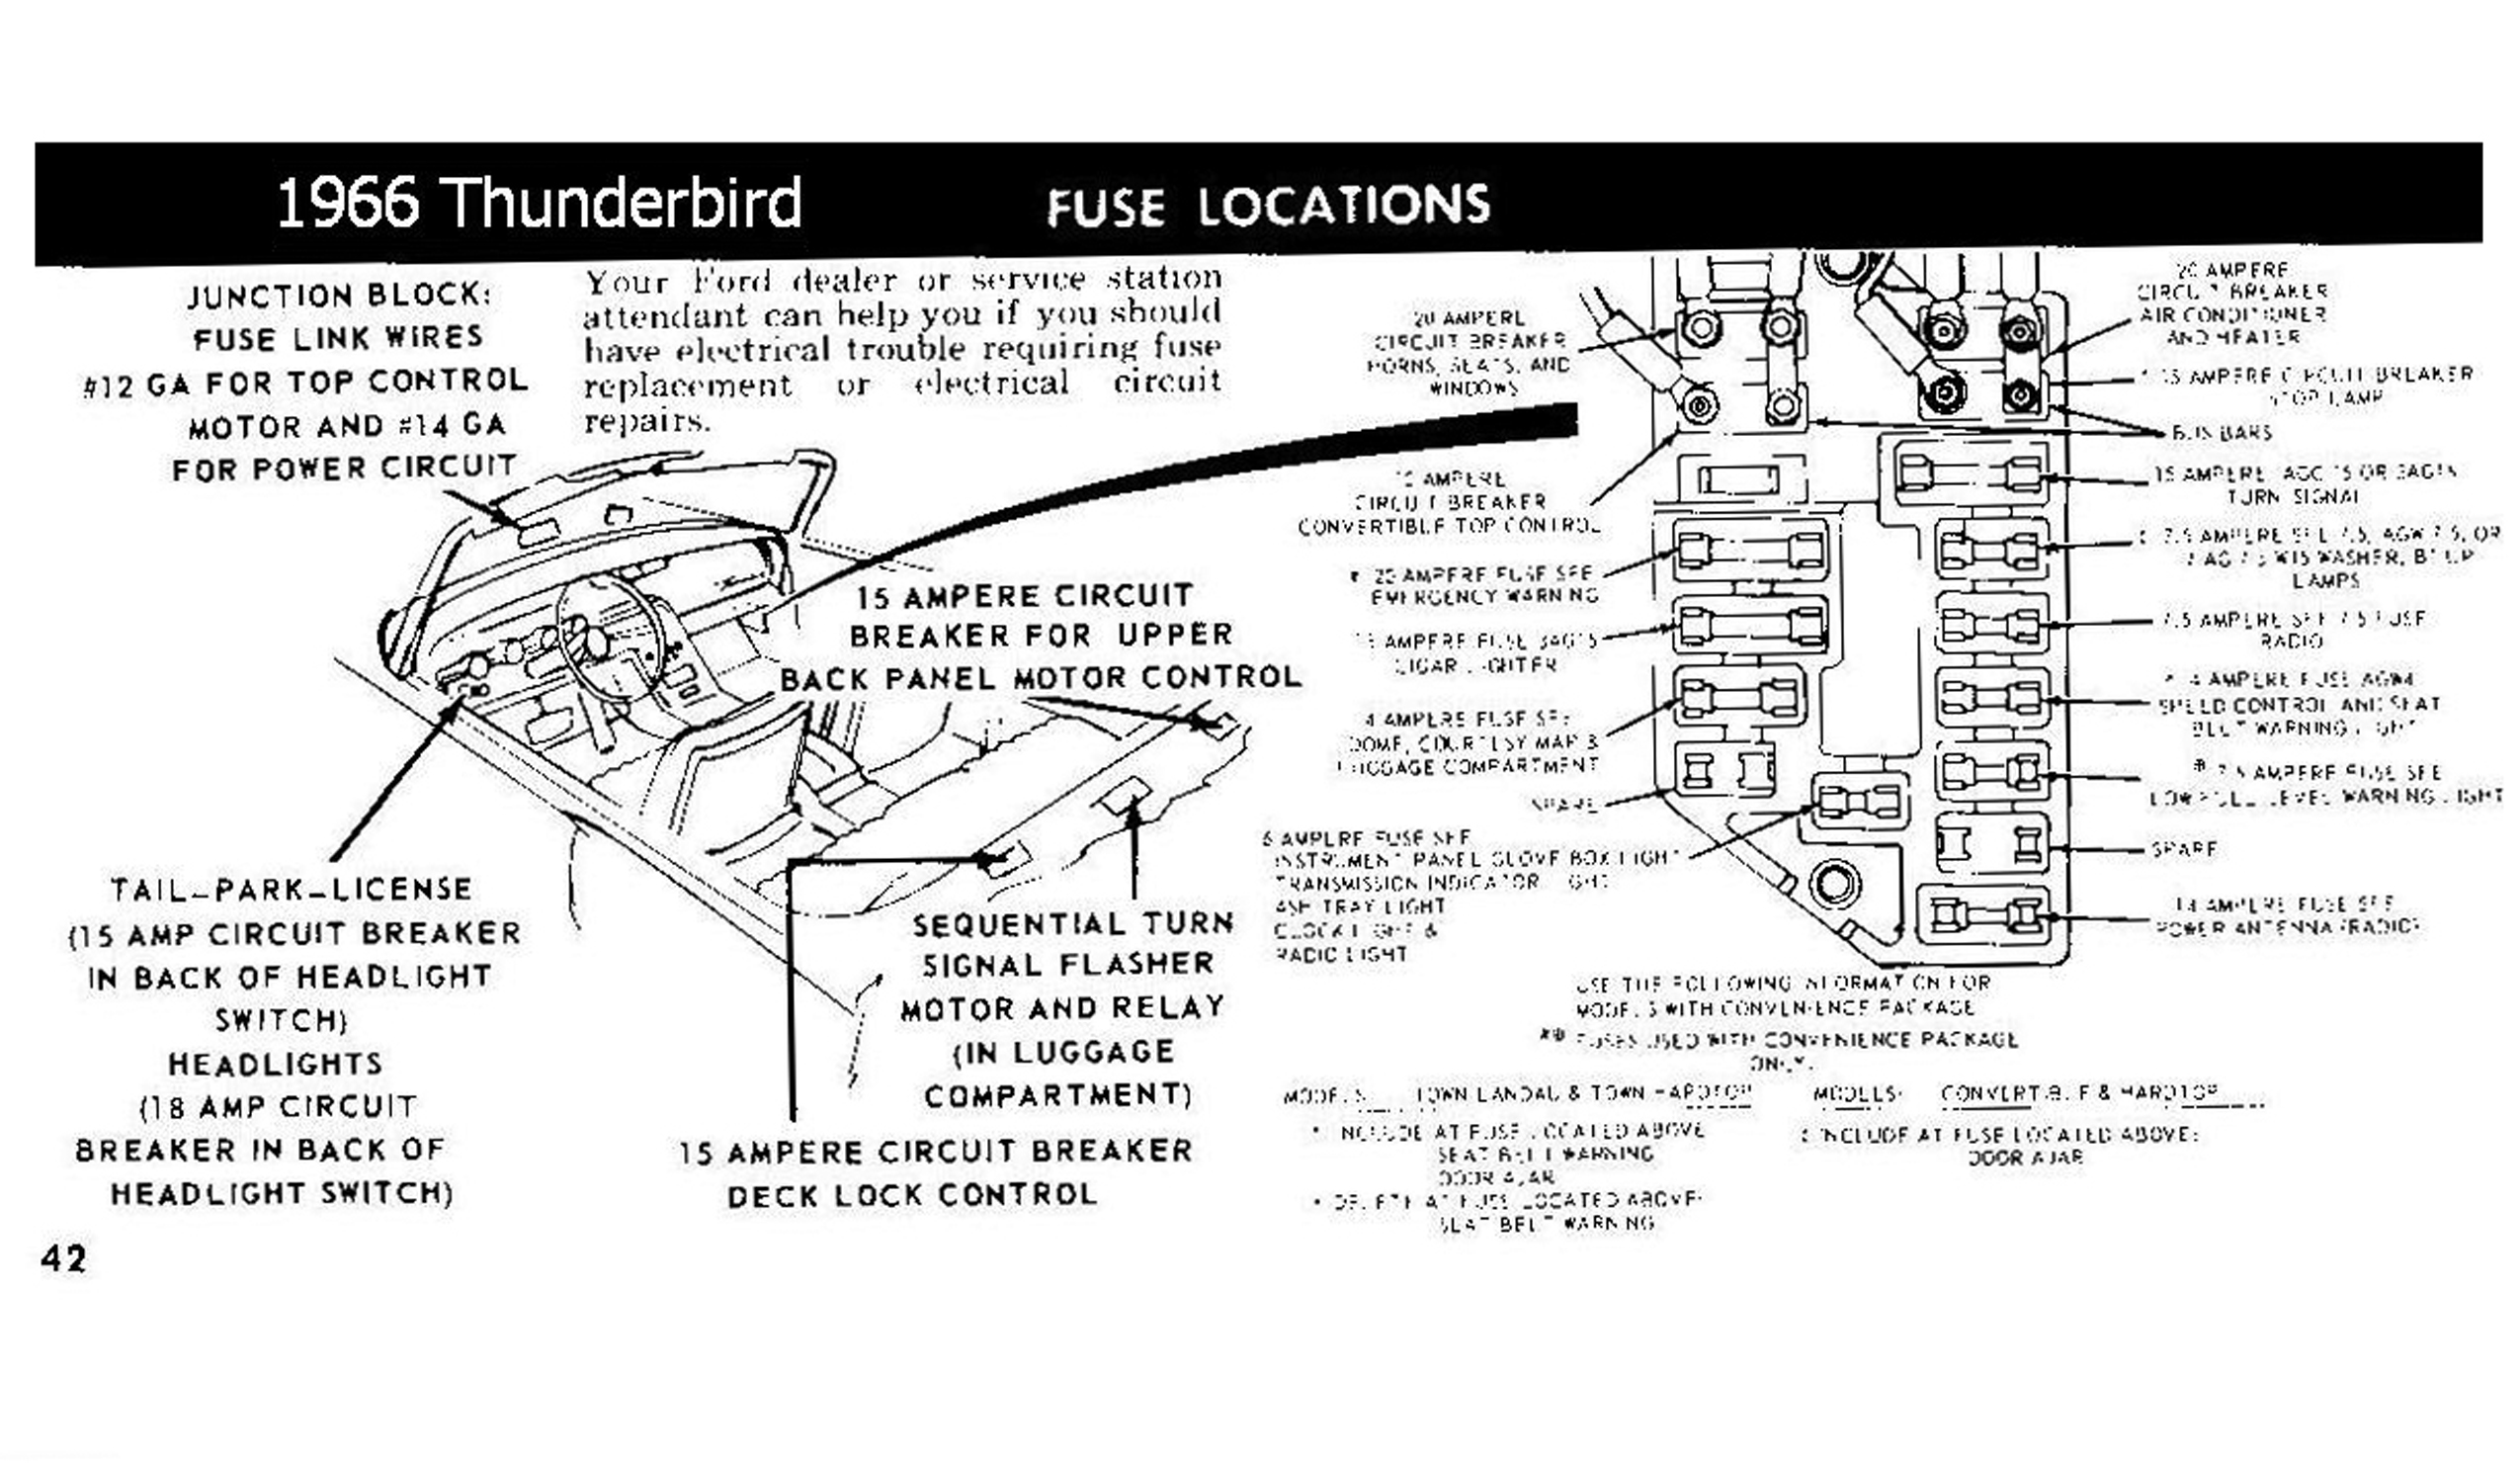 1958 68 Ford Electrical Schematics 15 Circuit Breaker Wiring Diagram 17